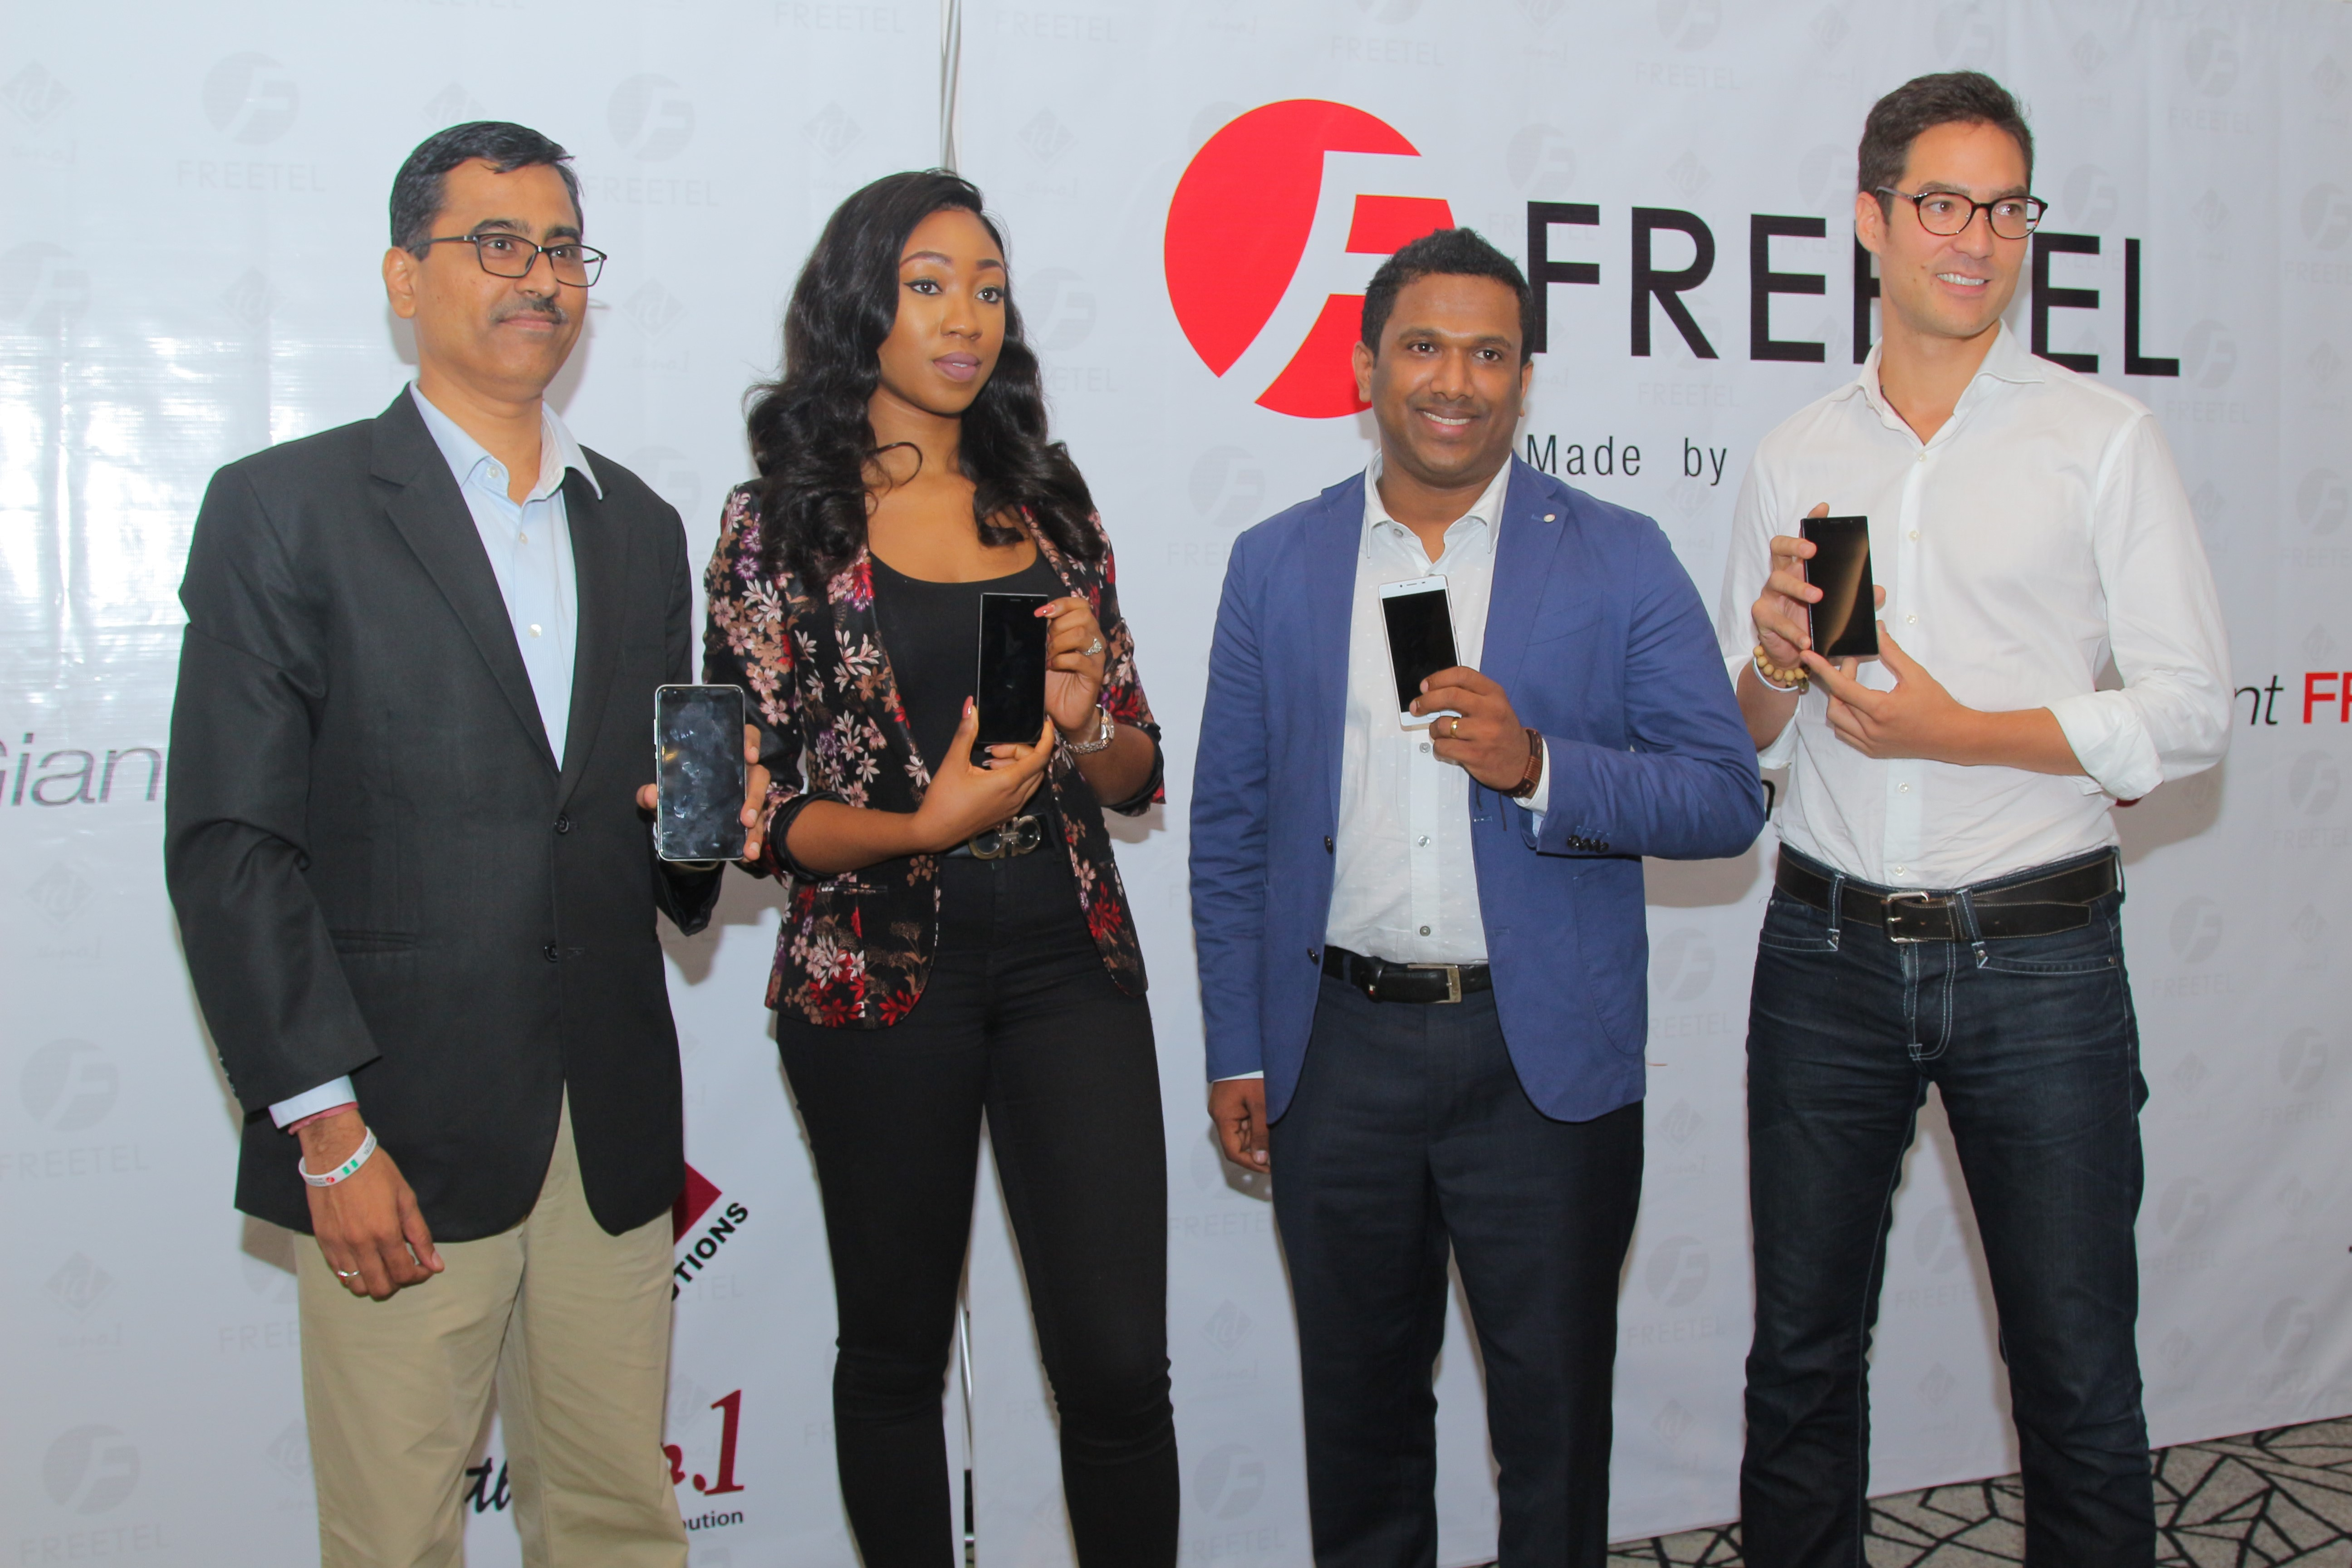 L-R: Freetel Head of Business Development West Africa, Mr. Anantha Surendran; Managing Director TD Mobile, Mrs. Gozy Ijogun; Freetel Head of Business Development, MEA Global Sales Group, Mathew Anish, and Freetel Executive officer, Global Business Development Mr. Eugene Yoshioka, during a press conference unveiling Freetel Mobile Smartphones in Nigeria at Renaissance Hotel GRA Ikeja Lagos.